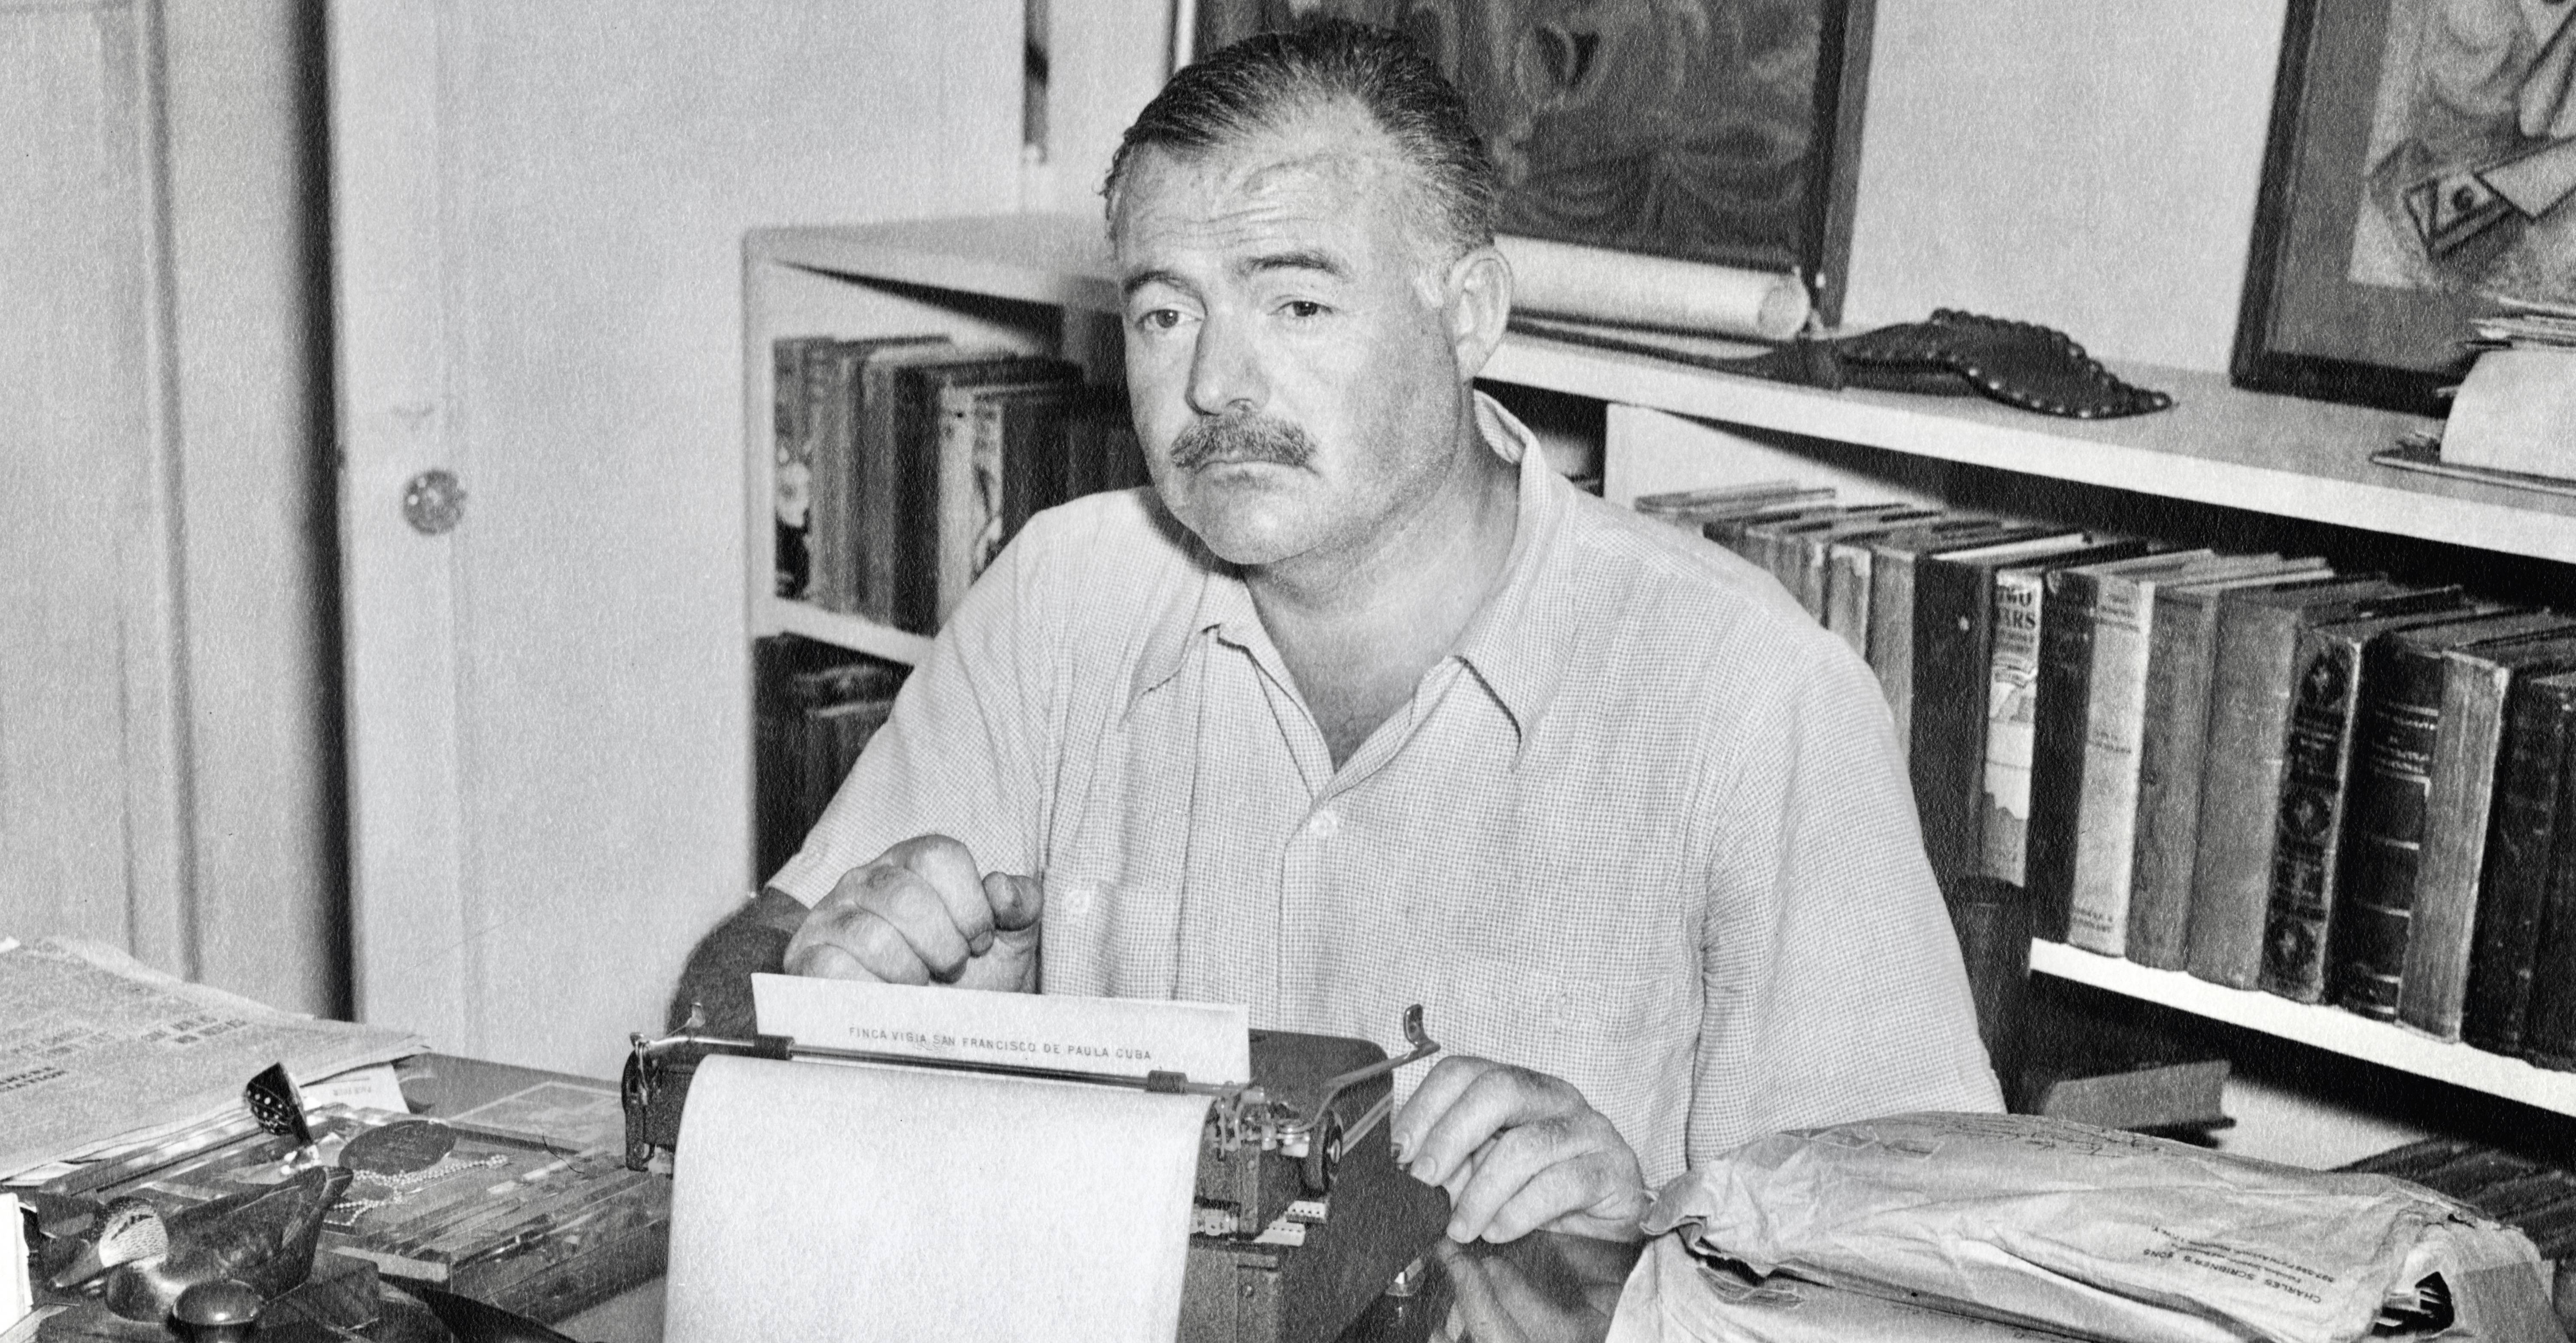 Ernest Hemingway at his desk in Havana, Cuba. (Photographer unknown. Ernest Hemingway Collection. Photographs. John F. Kennedy Presidential Library and Museum, Boston)